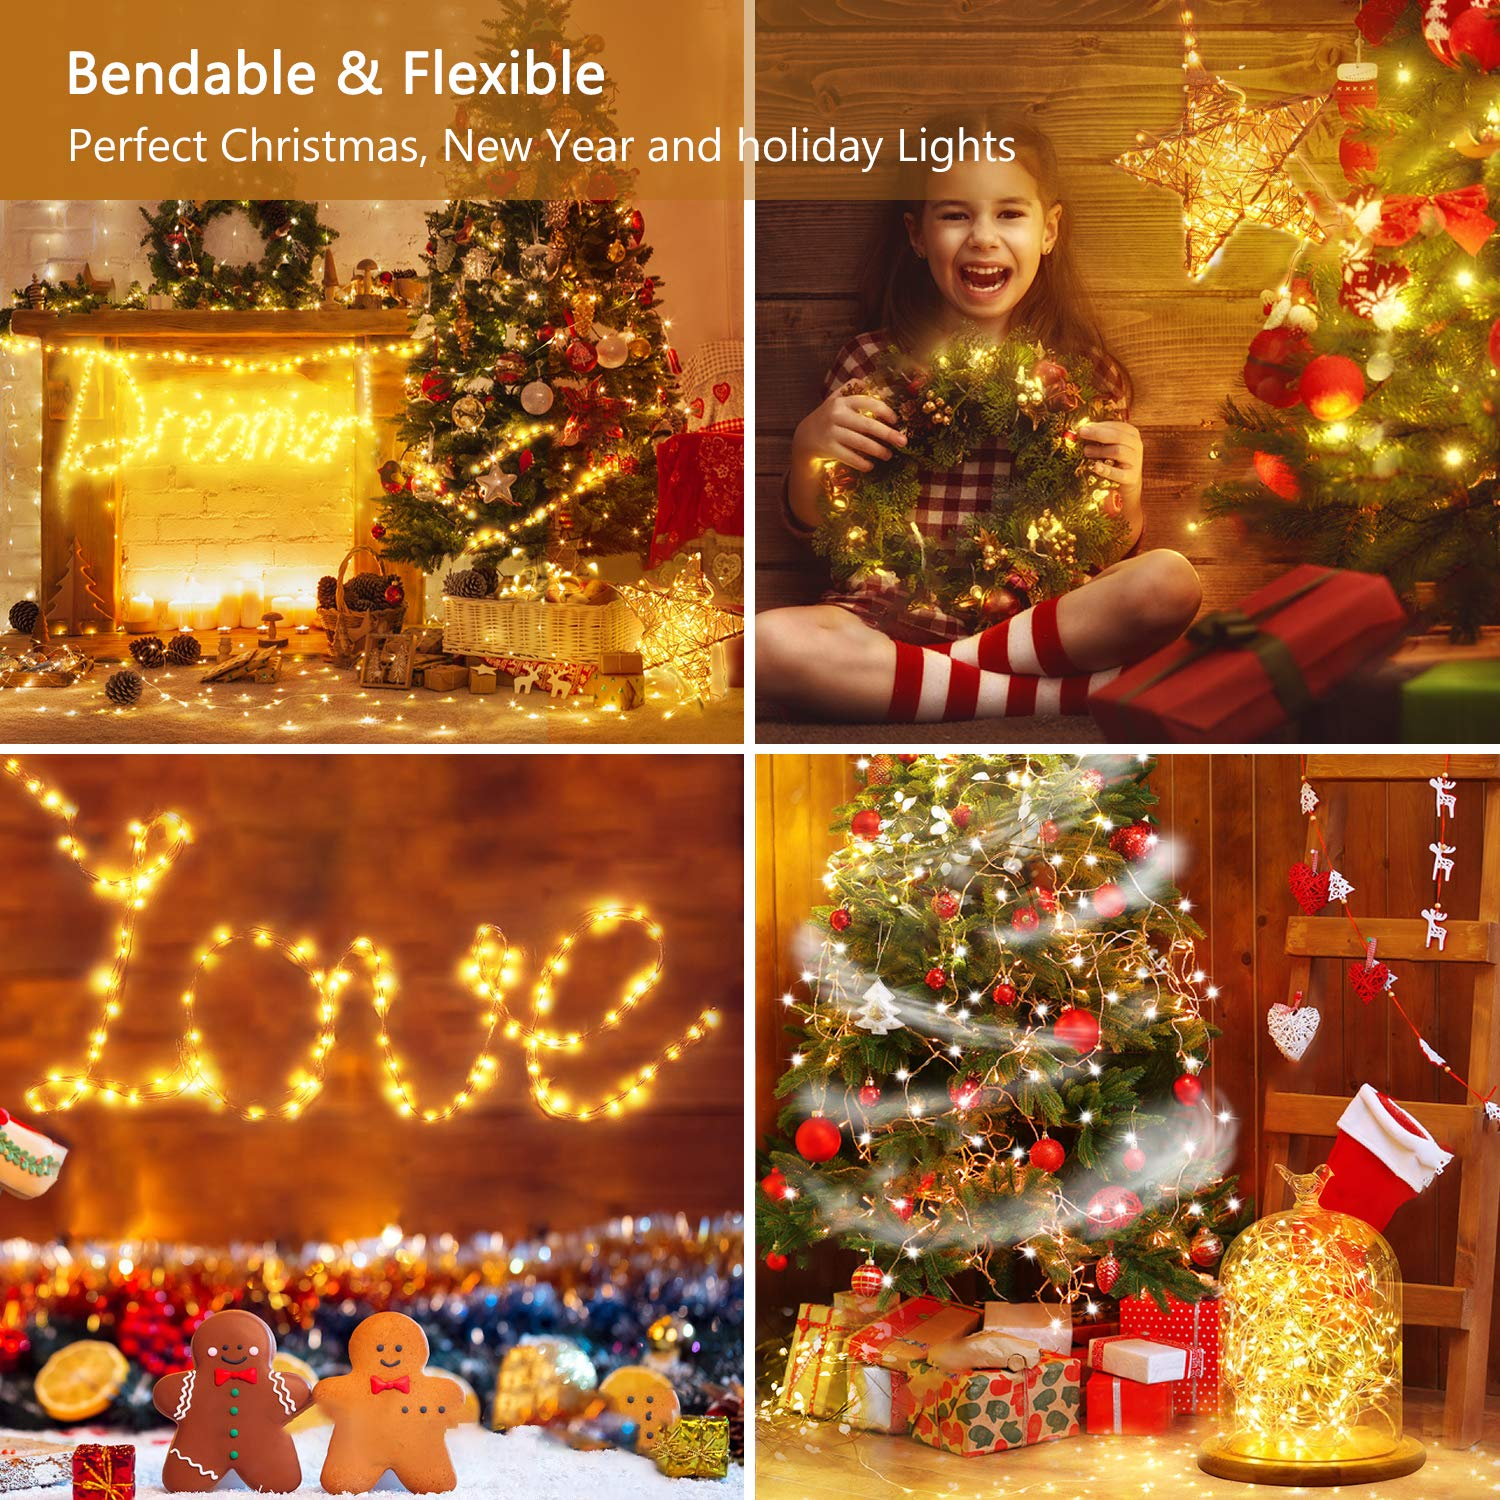 TECBOSS Rechargeable Led String Lights, 2 Pack 50 LED 16.4Ft String Fairy Lights, Battery Operated Lights for Wedding Party Home Garden Bedroom Outdoor Indoor Wall Decorations Christmas Decor